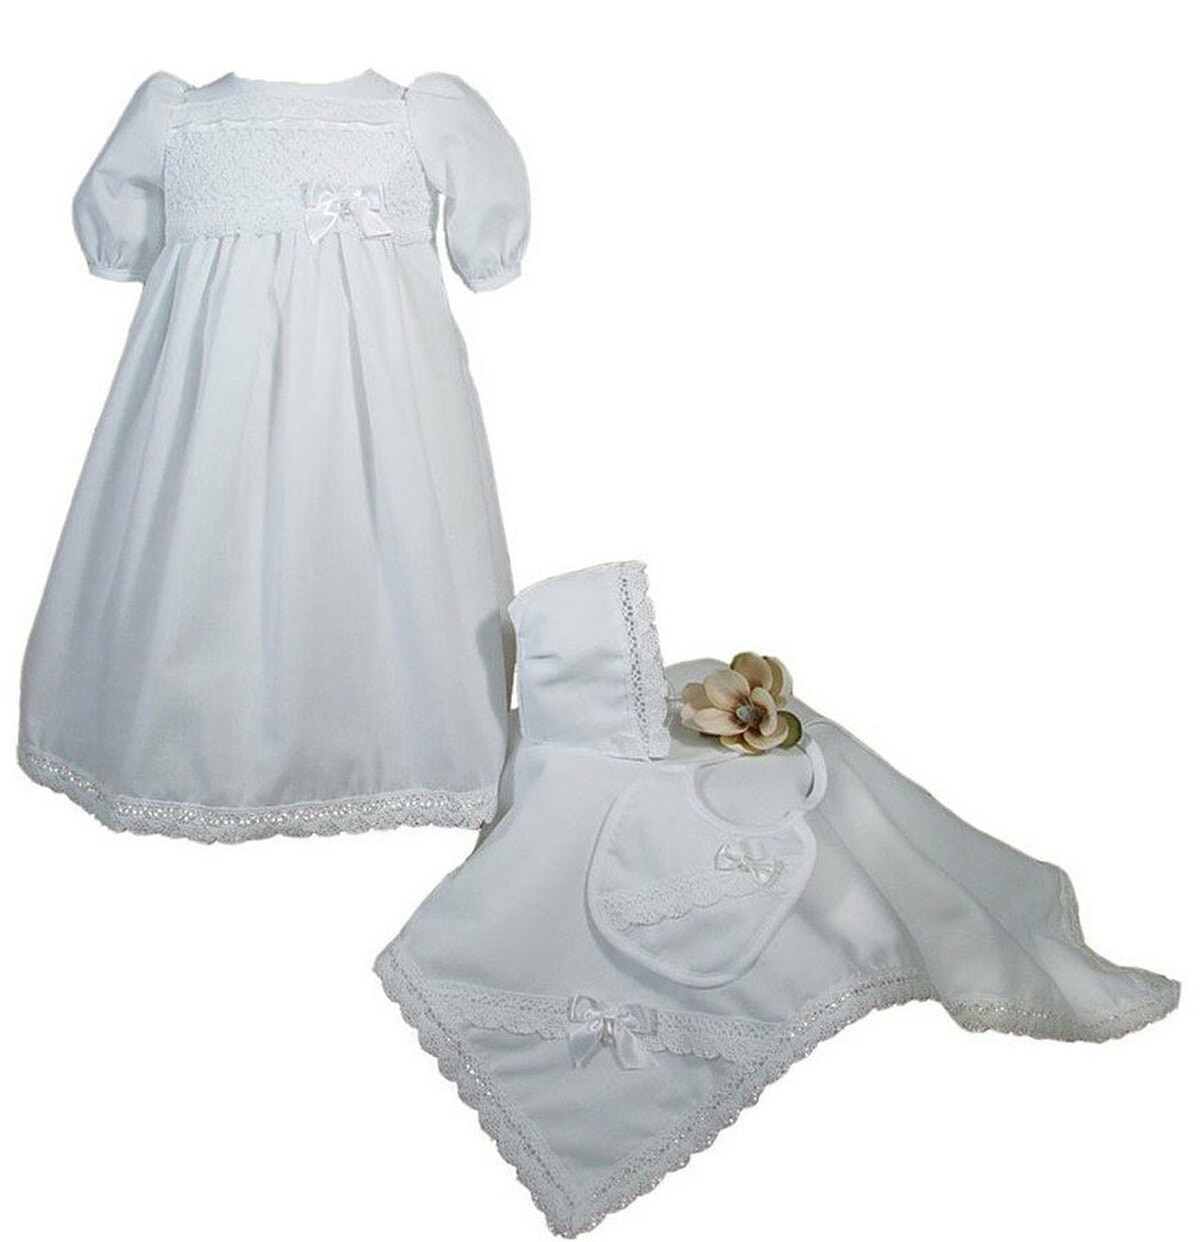 girls-preemie-dress-christening-gown-baptism-set-lace-hem-15082.1536348549.jpg